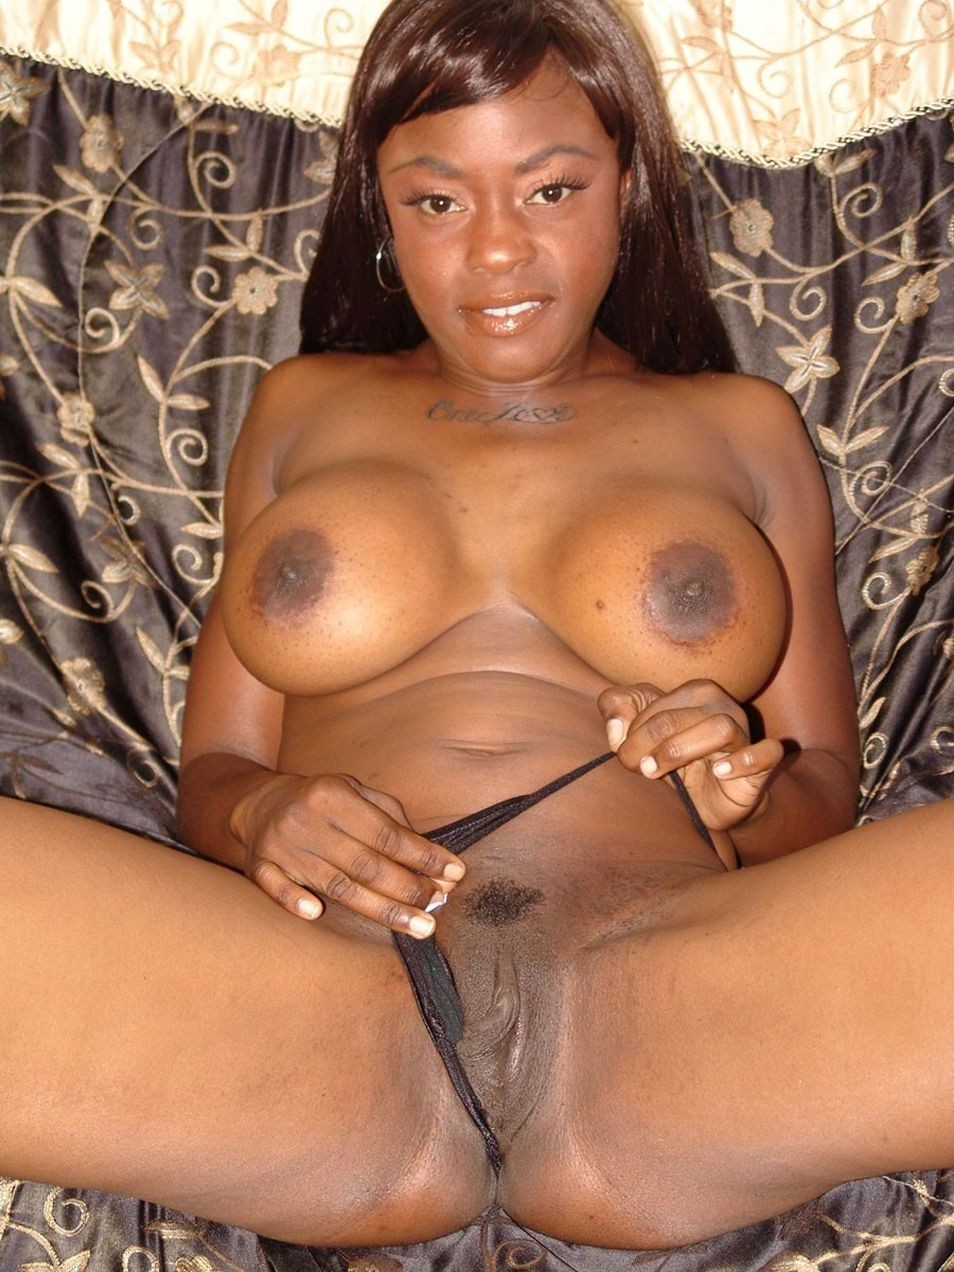 Amazing chocolate babe sexy bodyboobsexpert blowjob 6